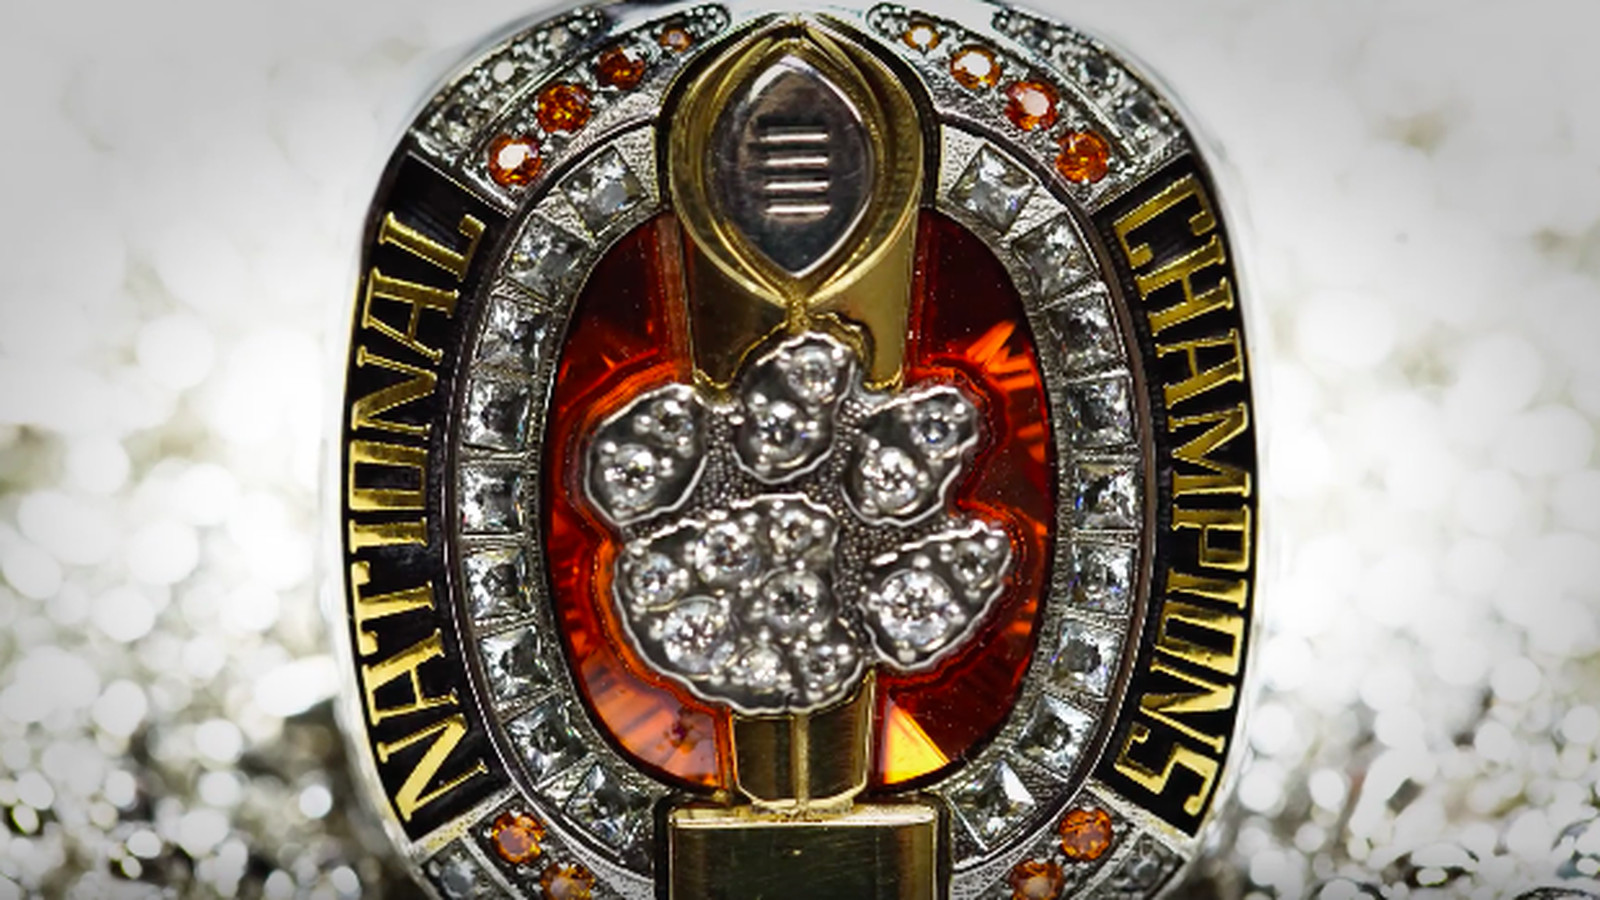 Clemson S 3 Minute Video About Its Title Rings Might Give